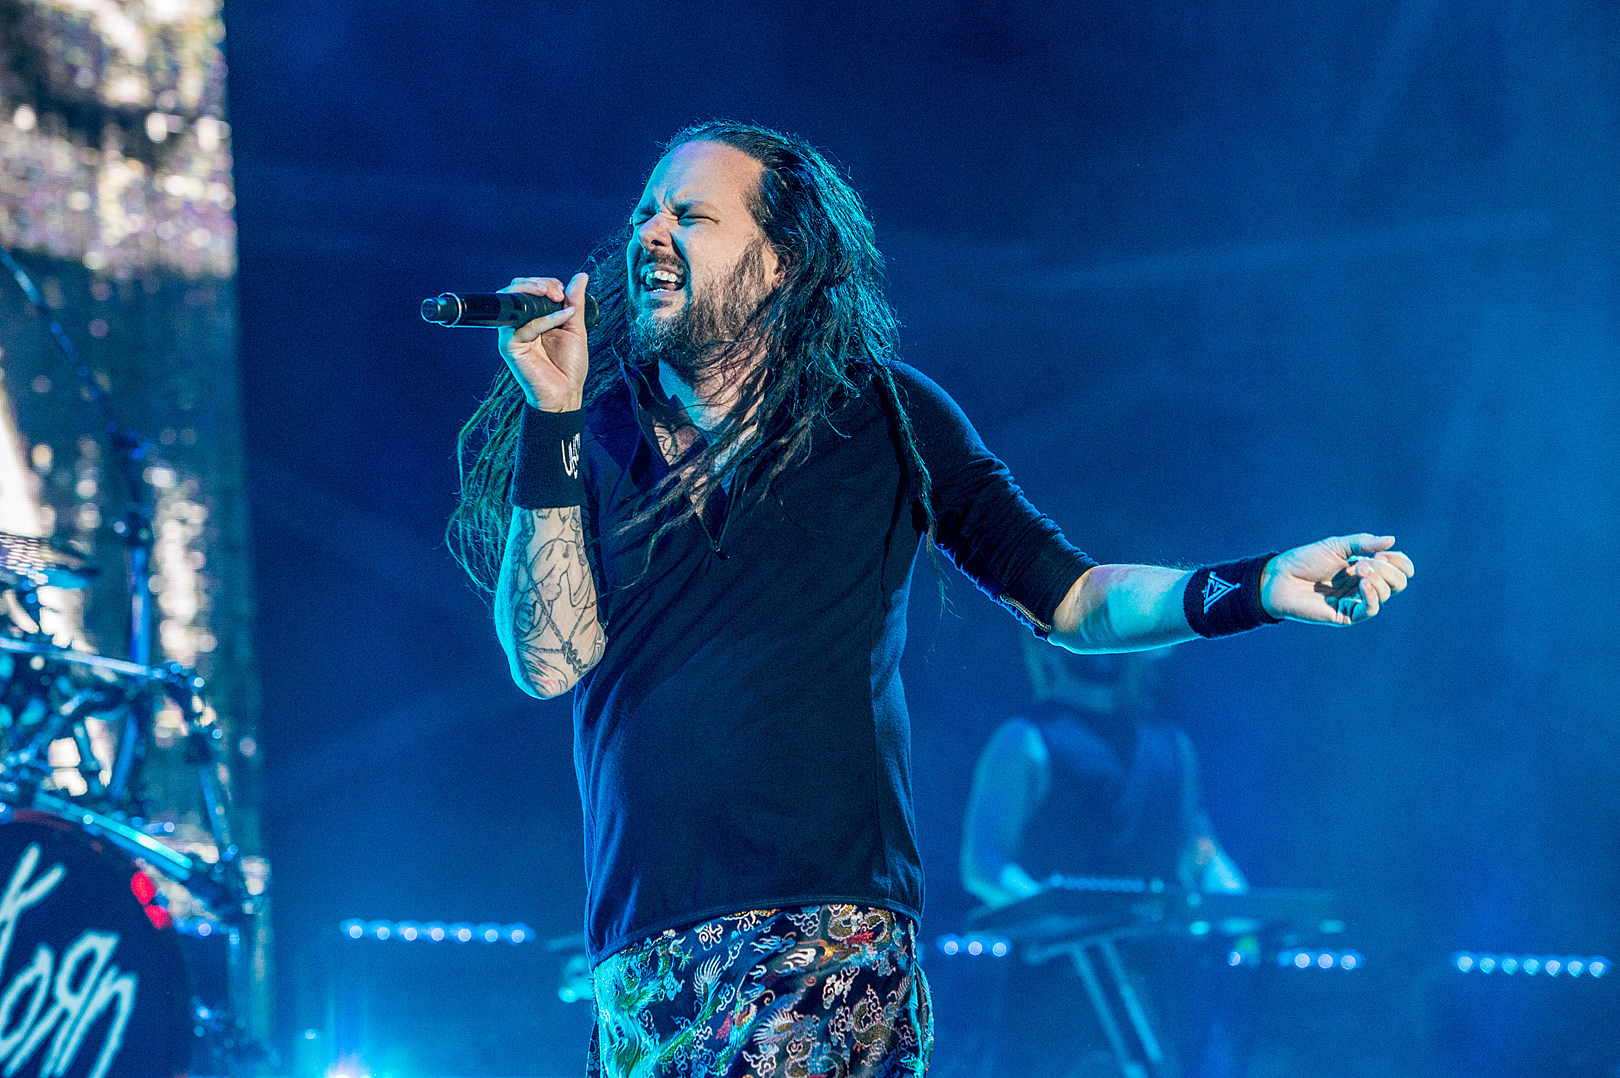 Jonathan Davis To Discuss Korn + His Solo Album at Free Musicians Institute Event